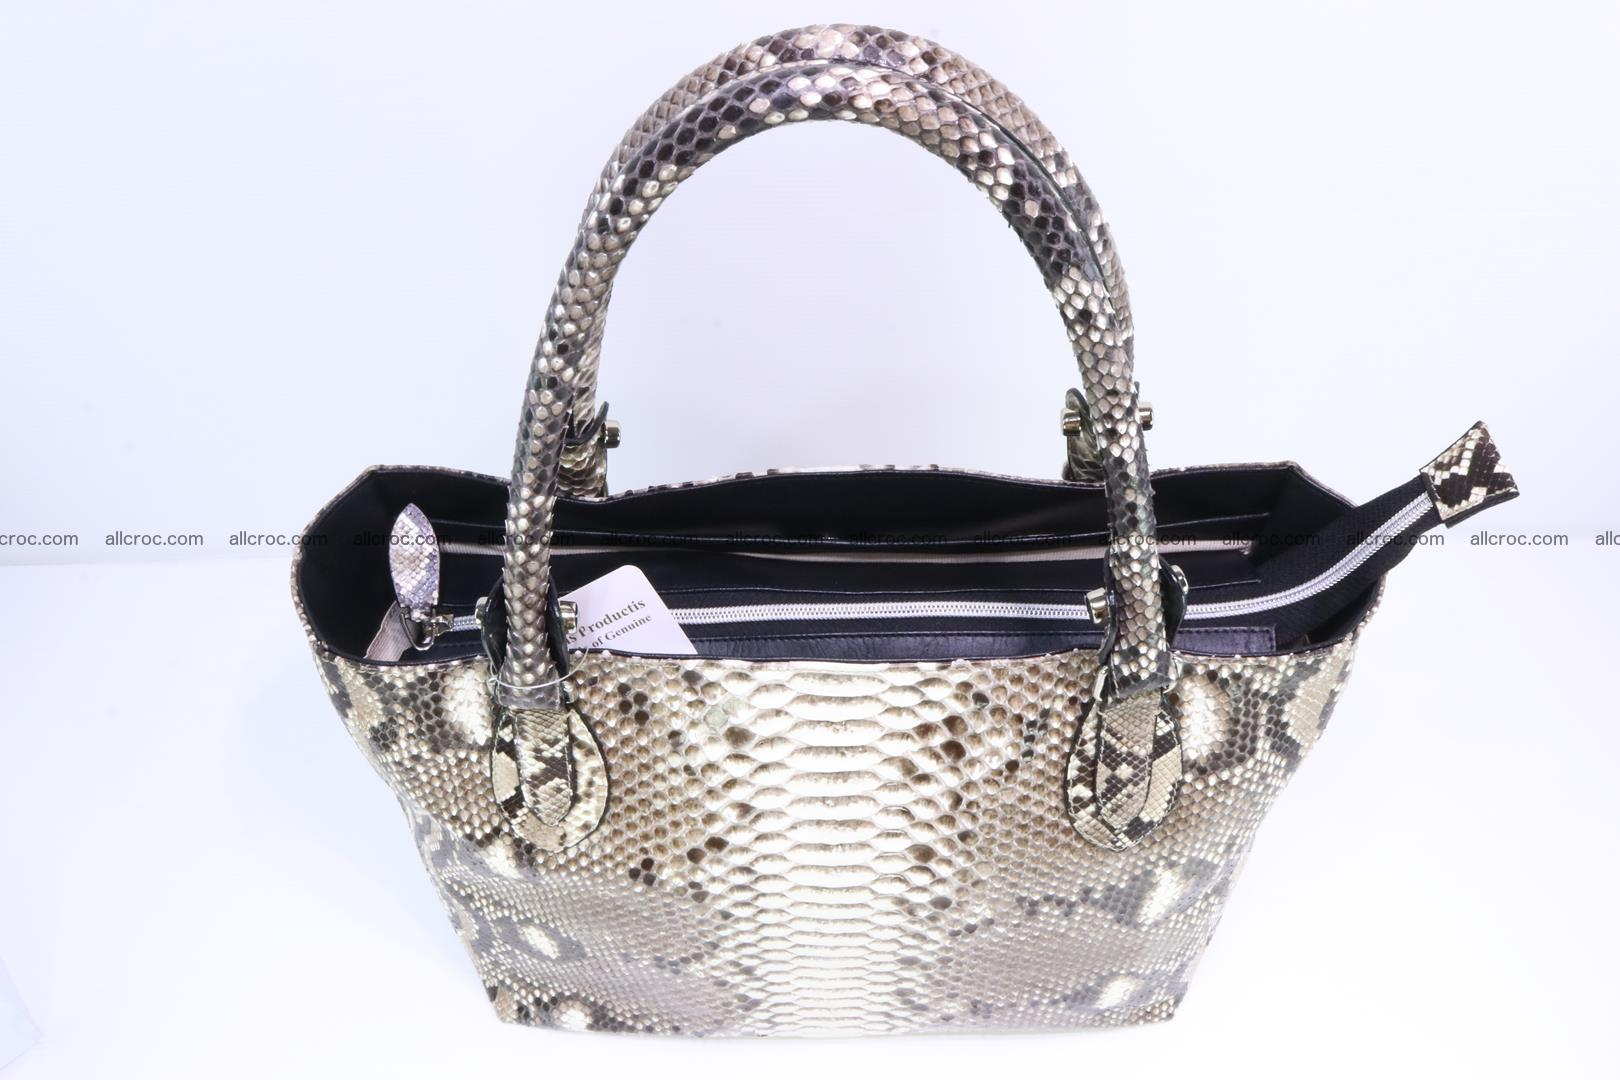 Python skin handbag for lady from genuine Python skin 205 Foto 4